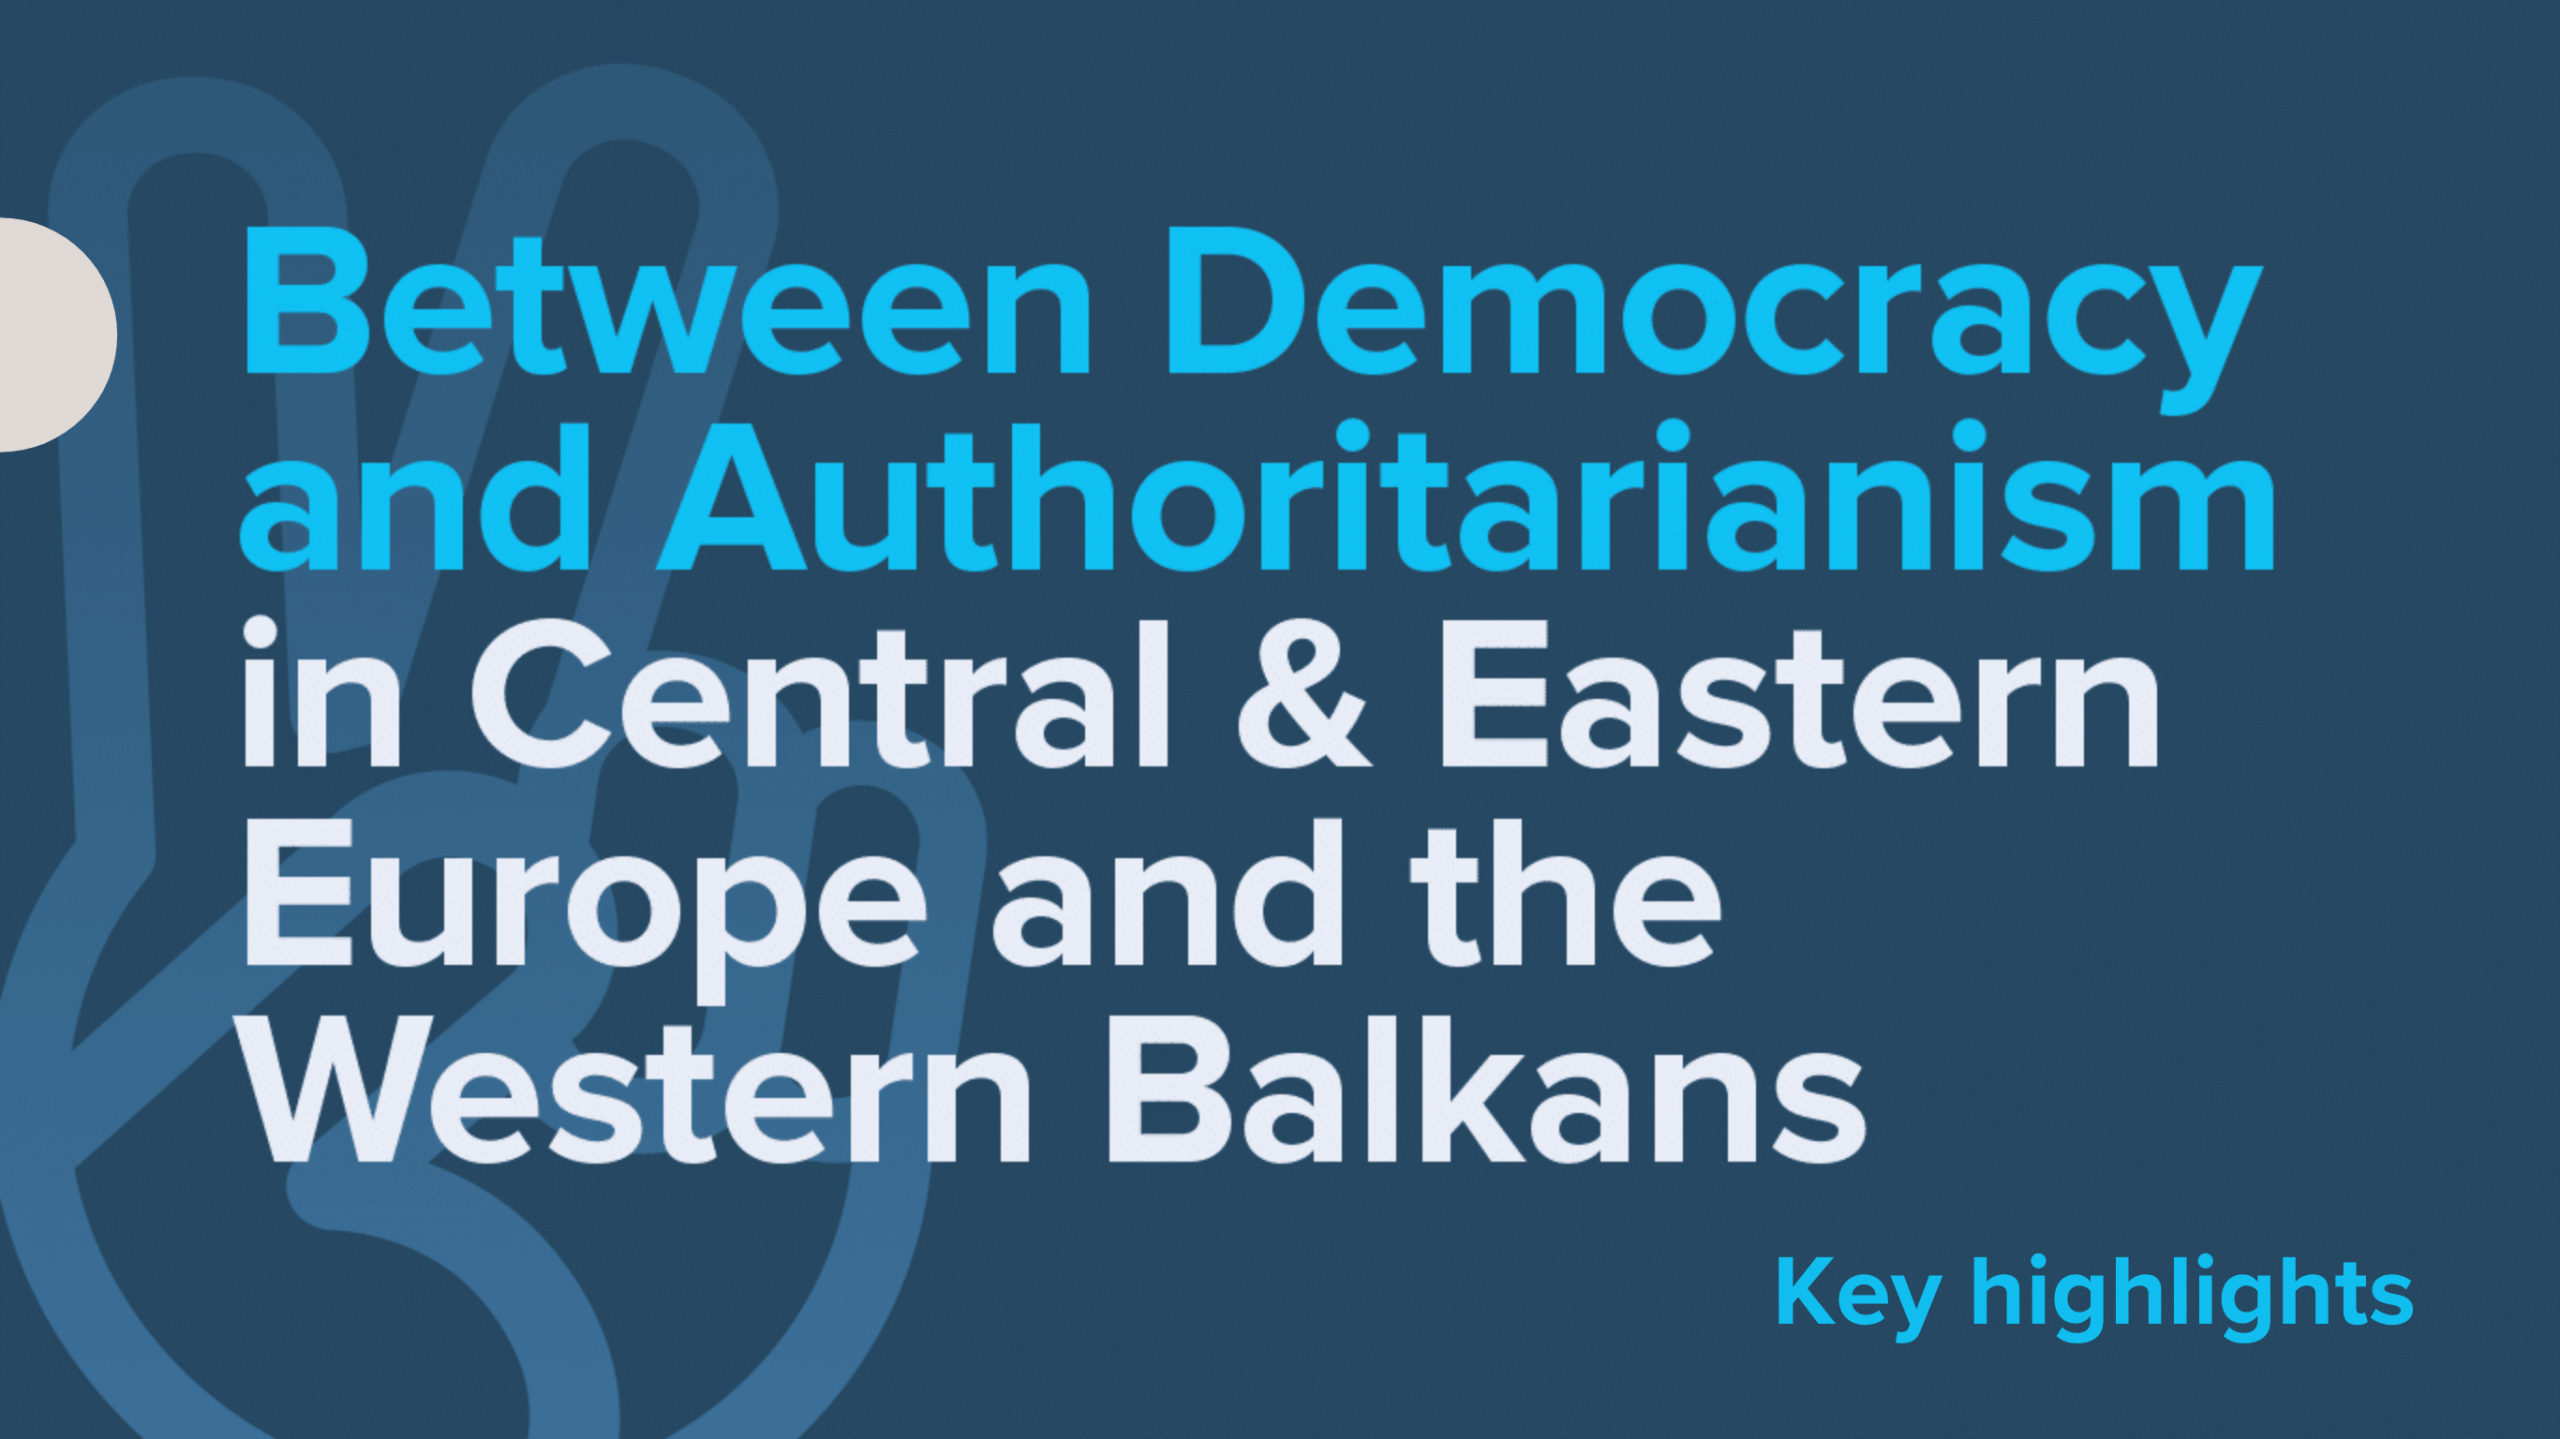 Democracy and Authoritarianism in CEE & Western Balkans: Key Highlights